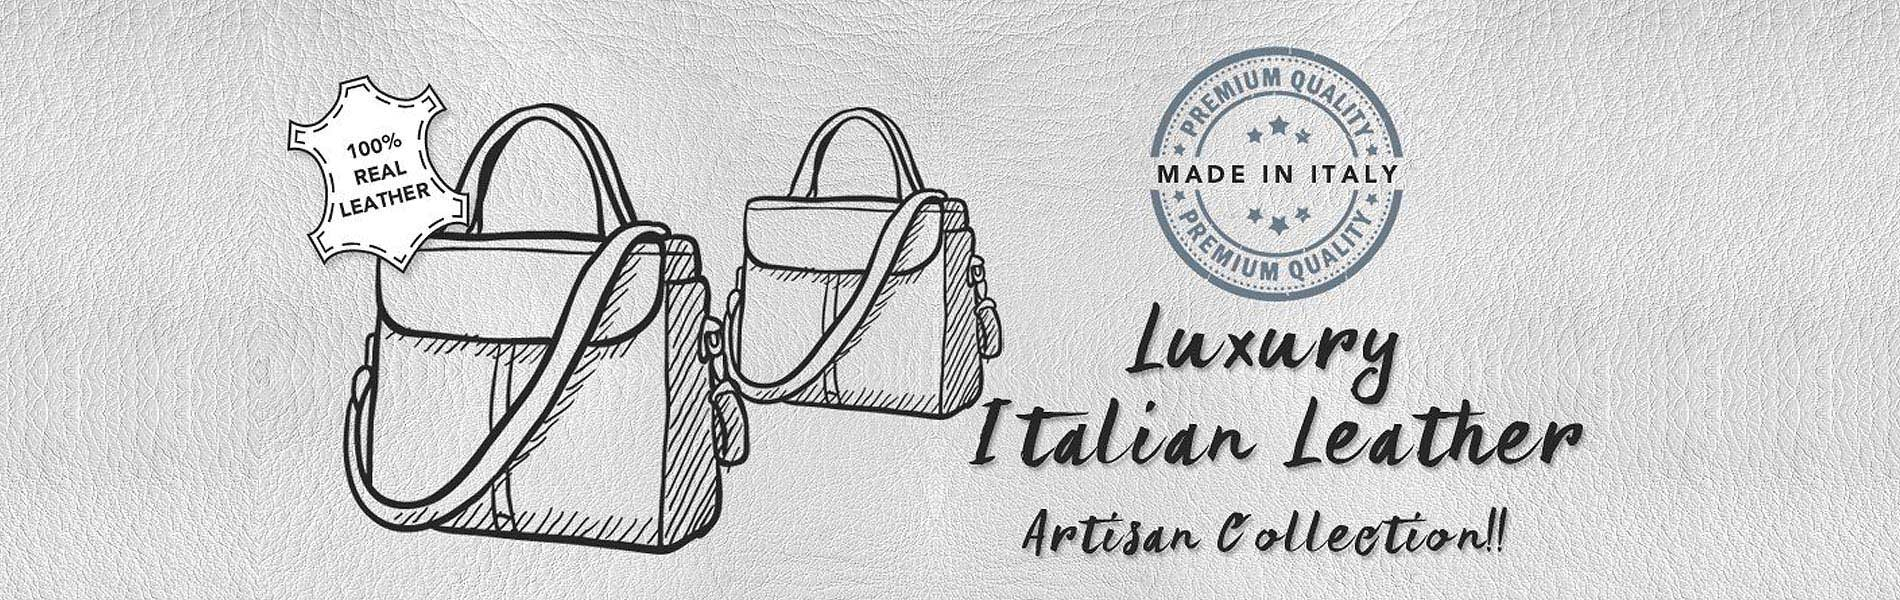 Luxury Italian Leather